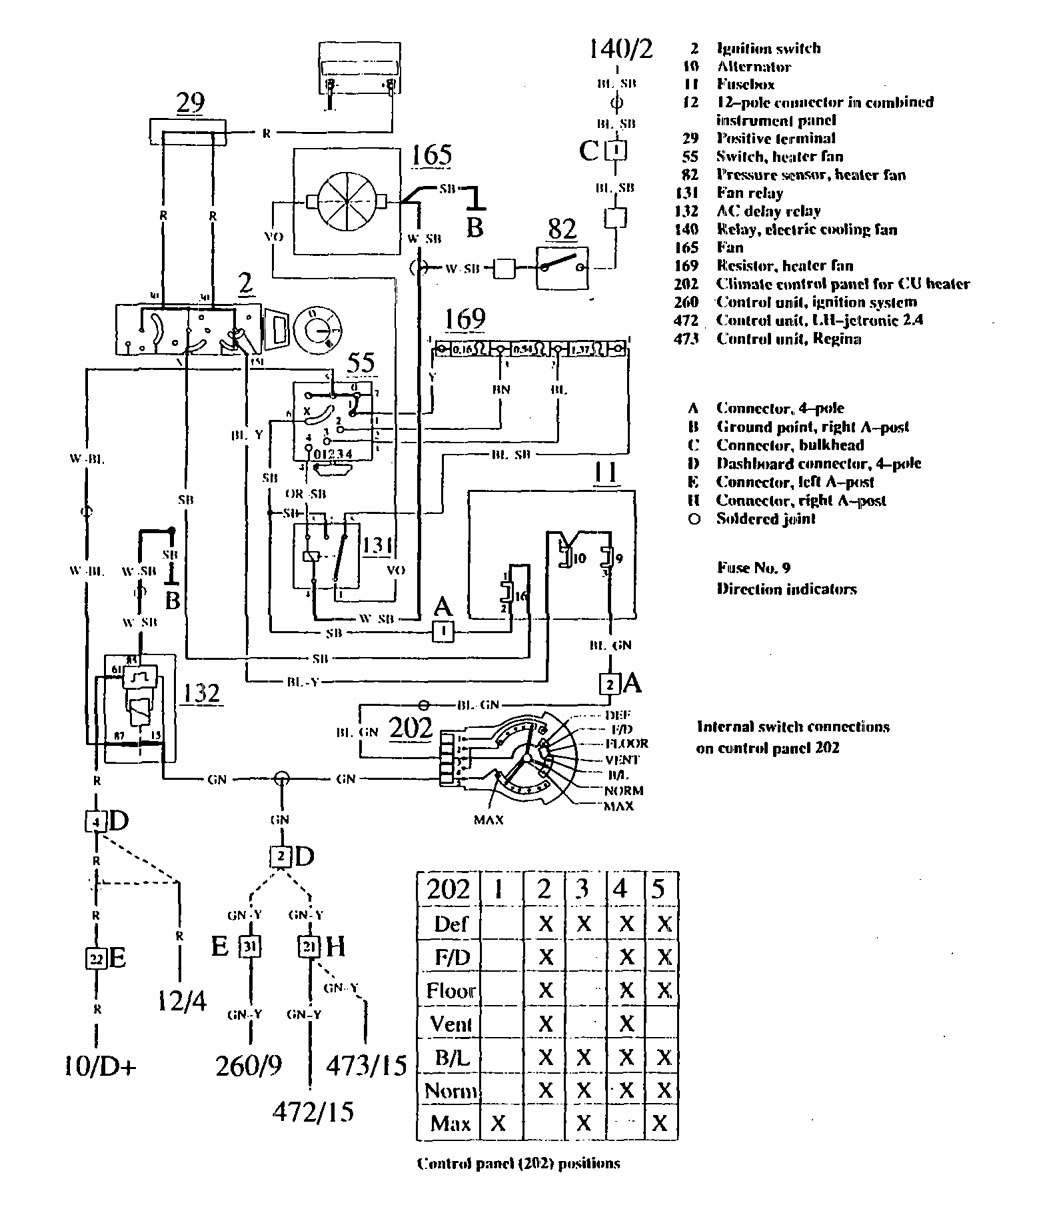 Volvo 740 Gle Wiring Diagram Library 2004 240 Ke 1990 Diagrams Heater Carknowledge Radio